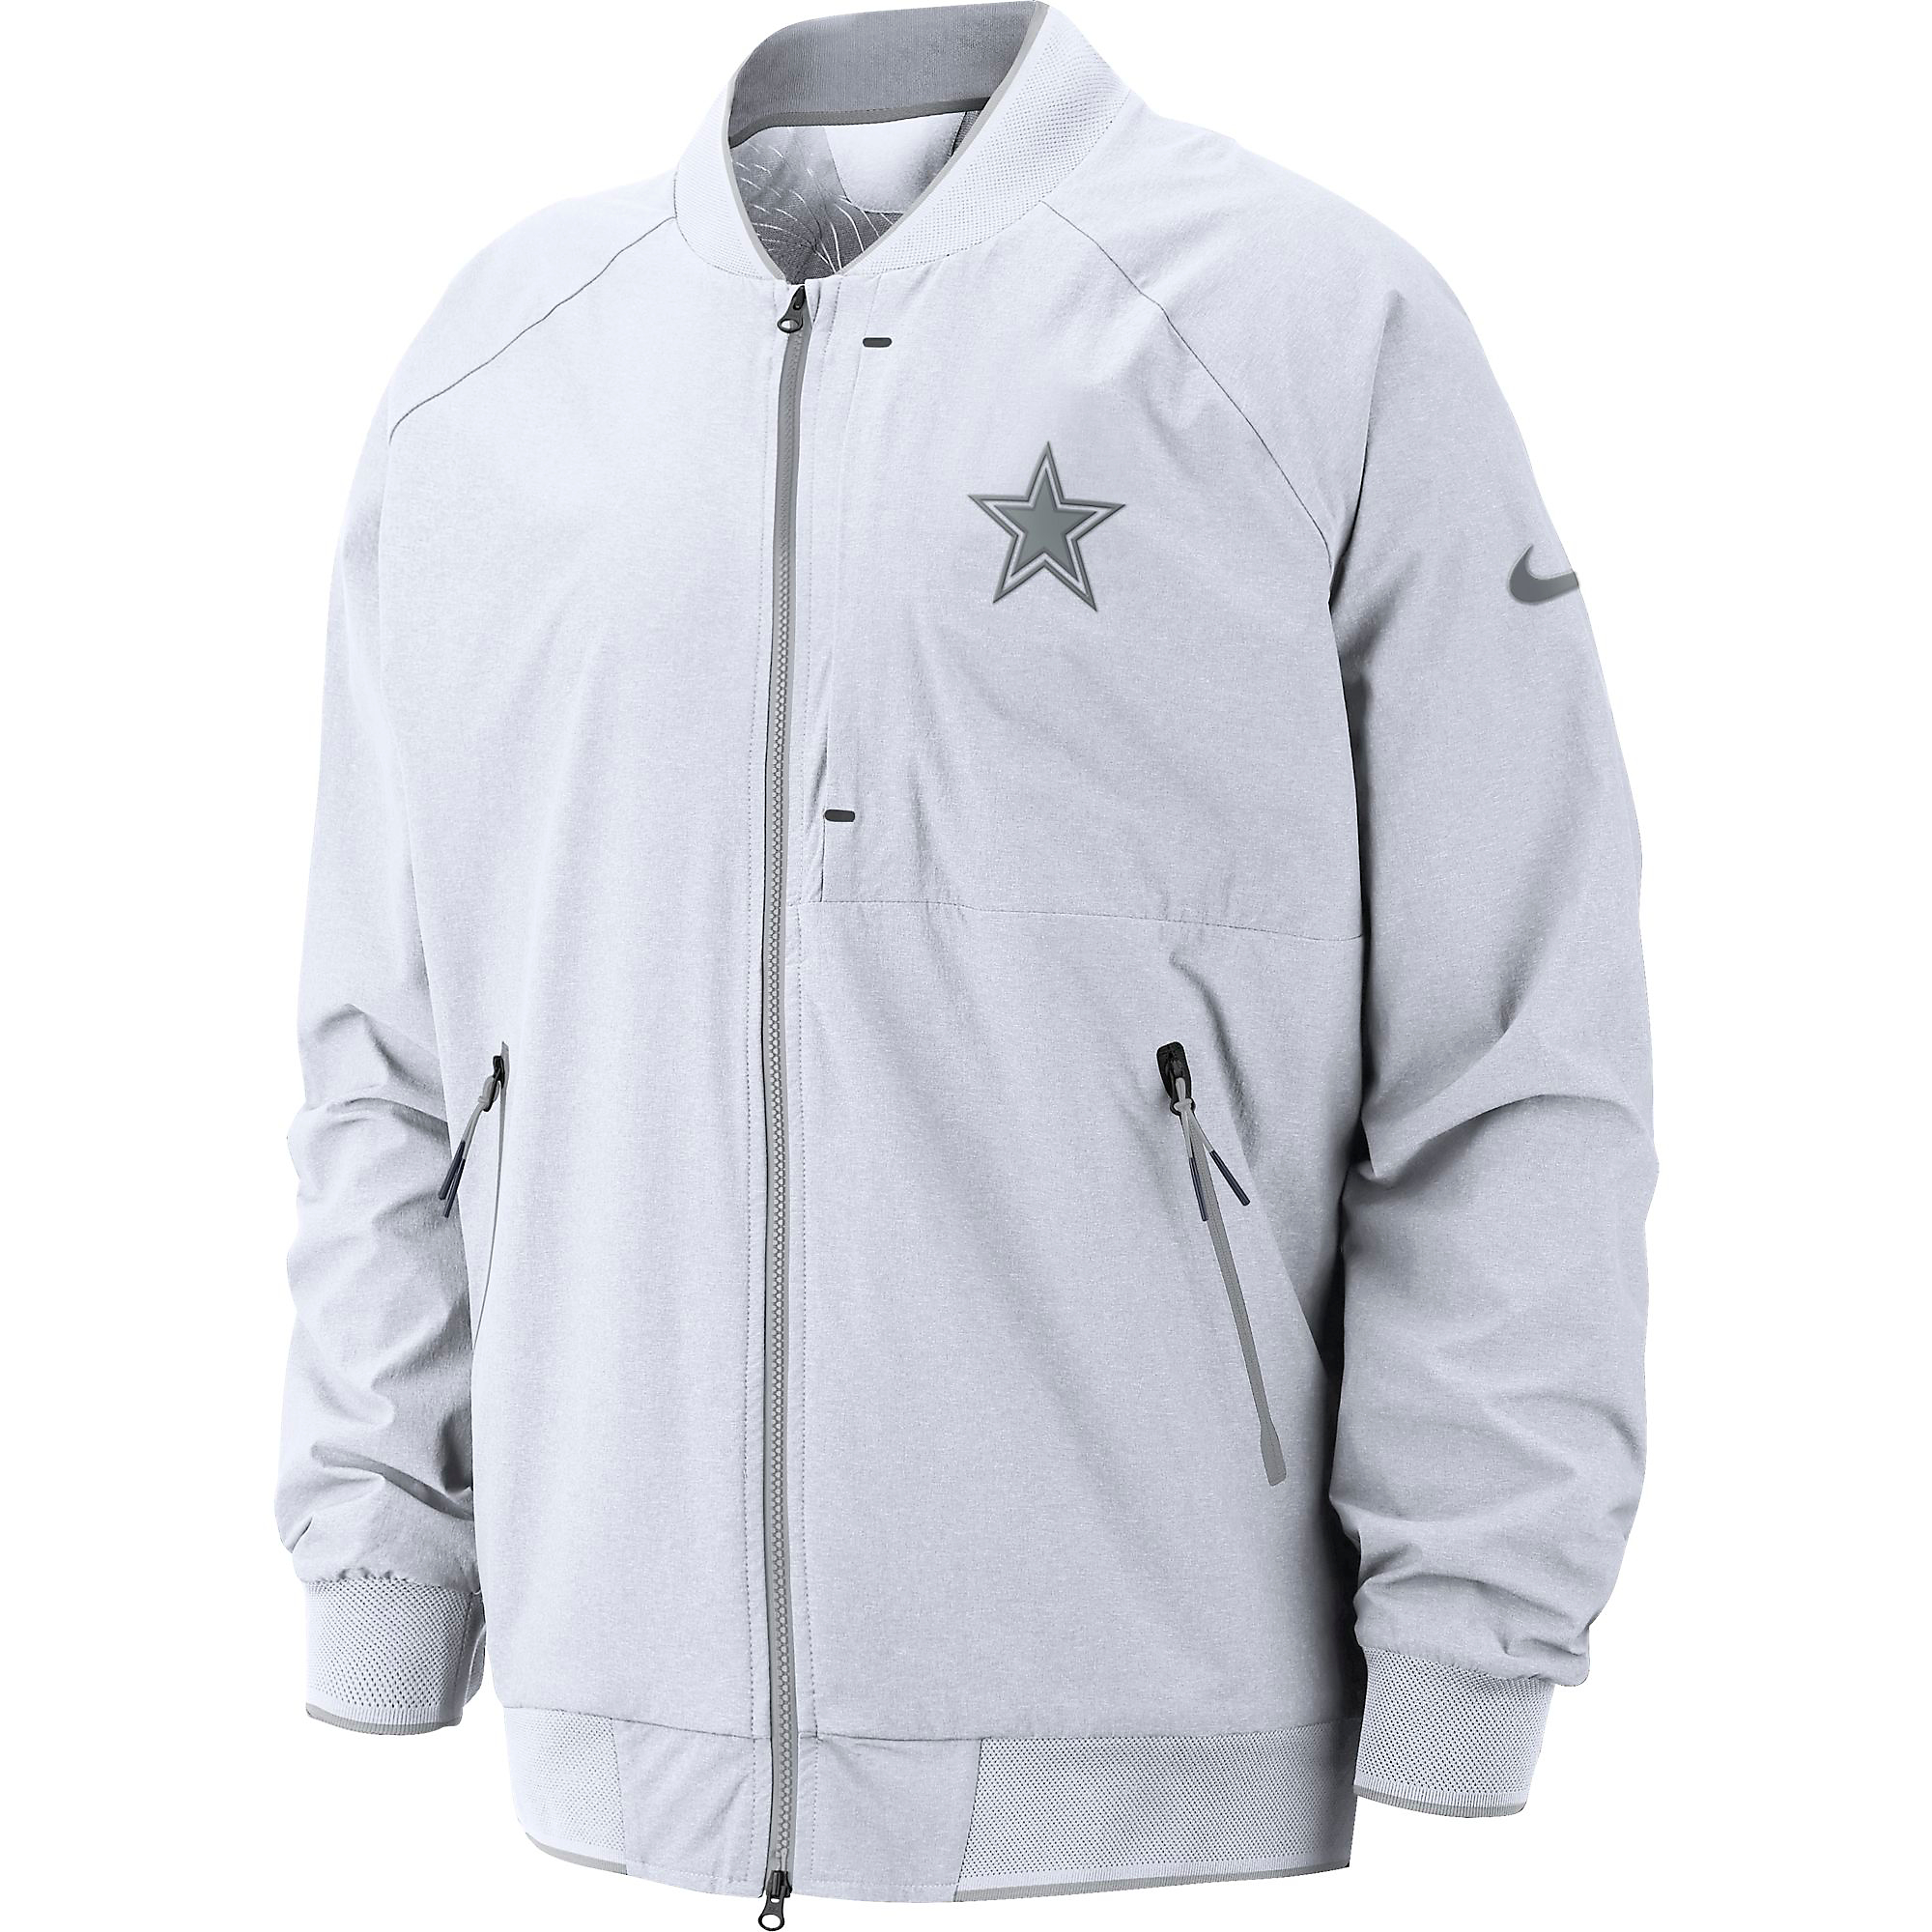 separation shoes c8c5d 02c9f Dallas Cowboys Nike Sideline Home Coaches Jacket